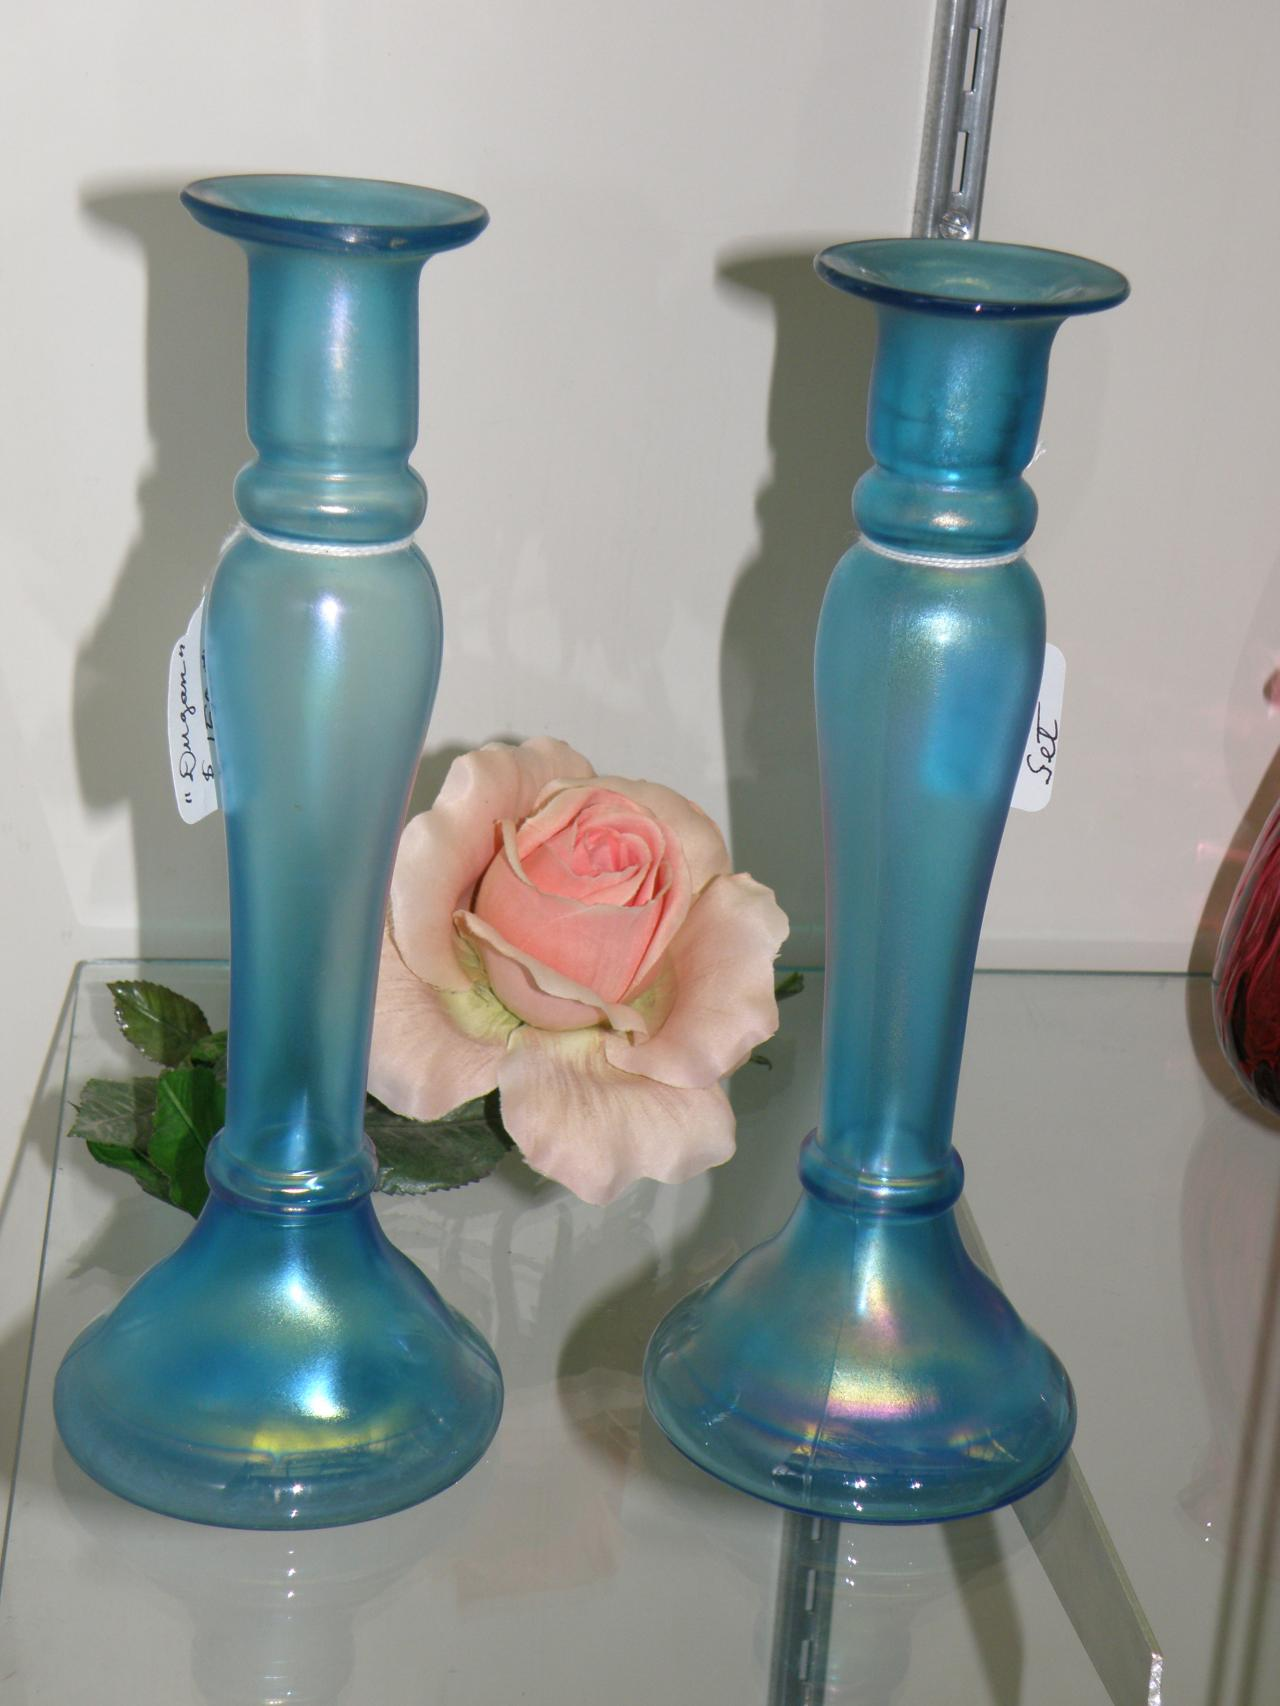 Antique Galleries Of St Petersburg Antique Porcelain Stained And Art Glass And Pottery Daum